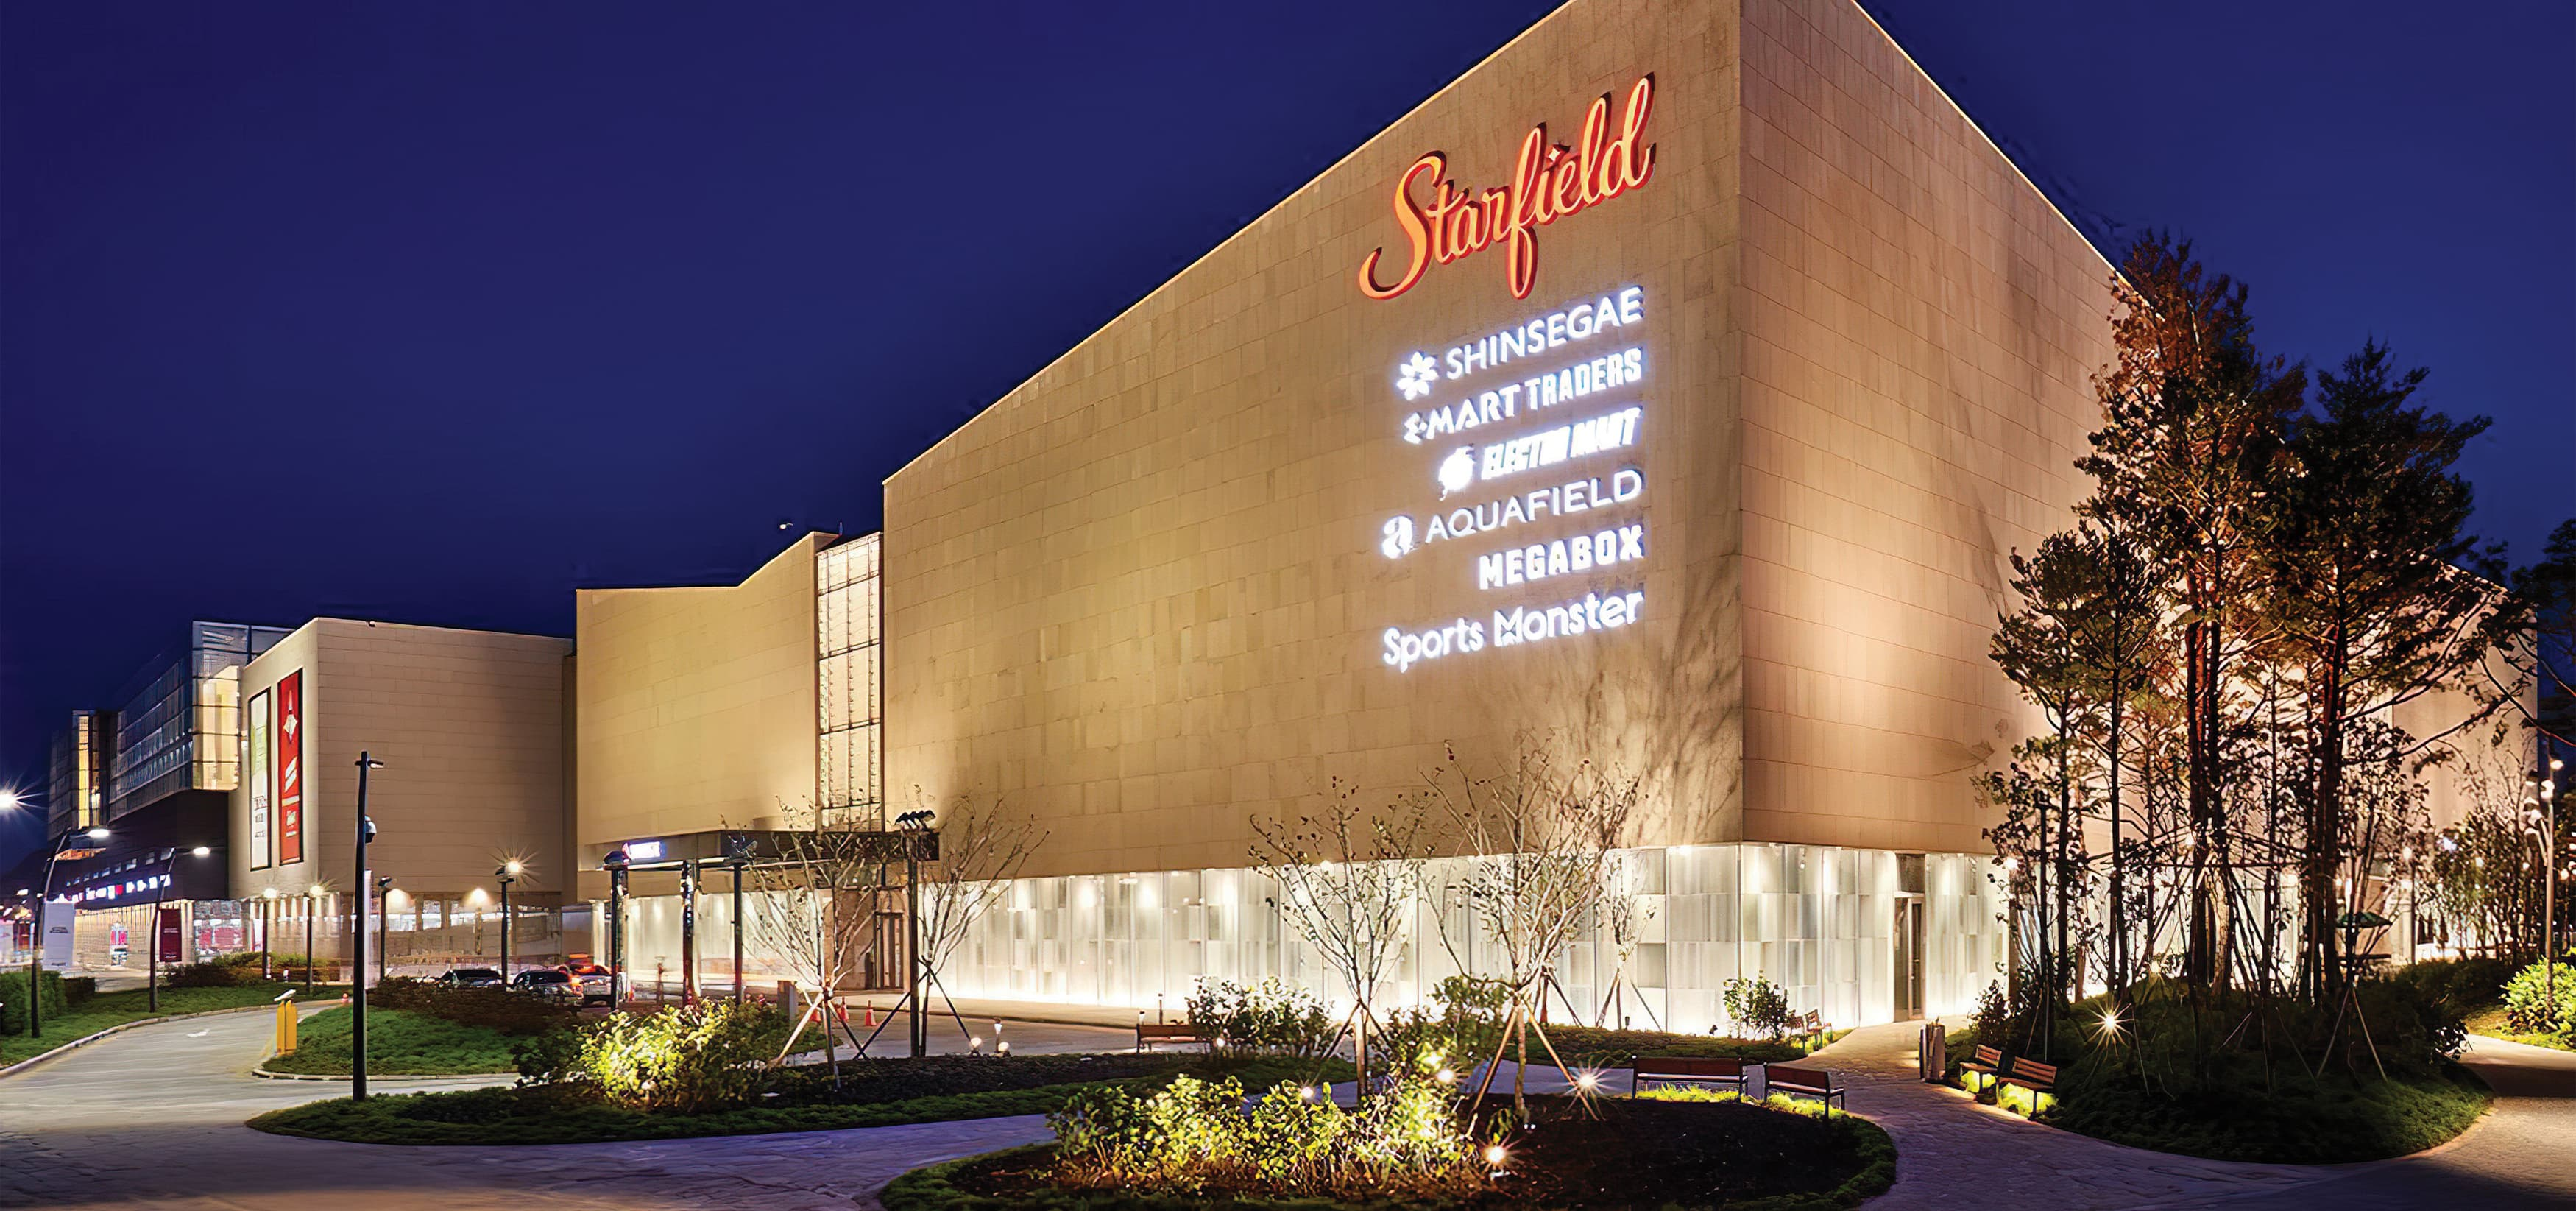 Starfield, a retail project in Hanam, South Korea. Exterior Architectural Facade Project Identity Signage and Illuminated Tenant Signage